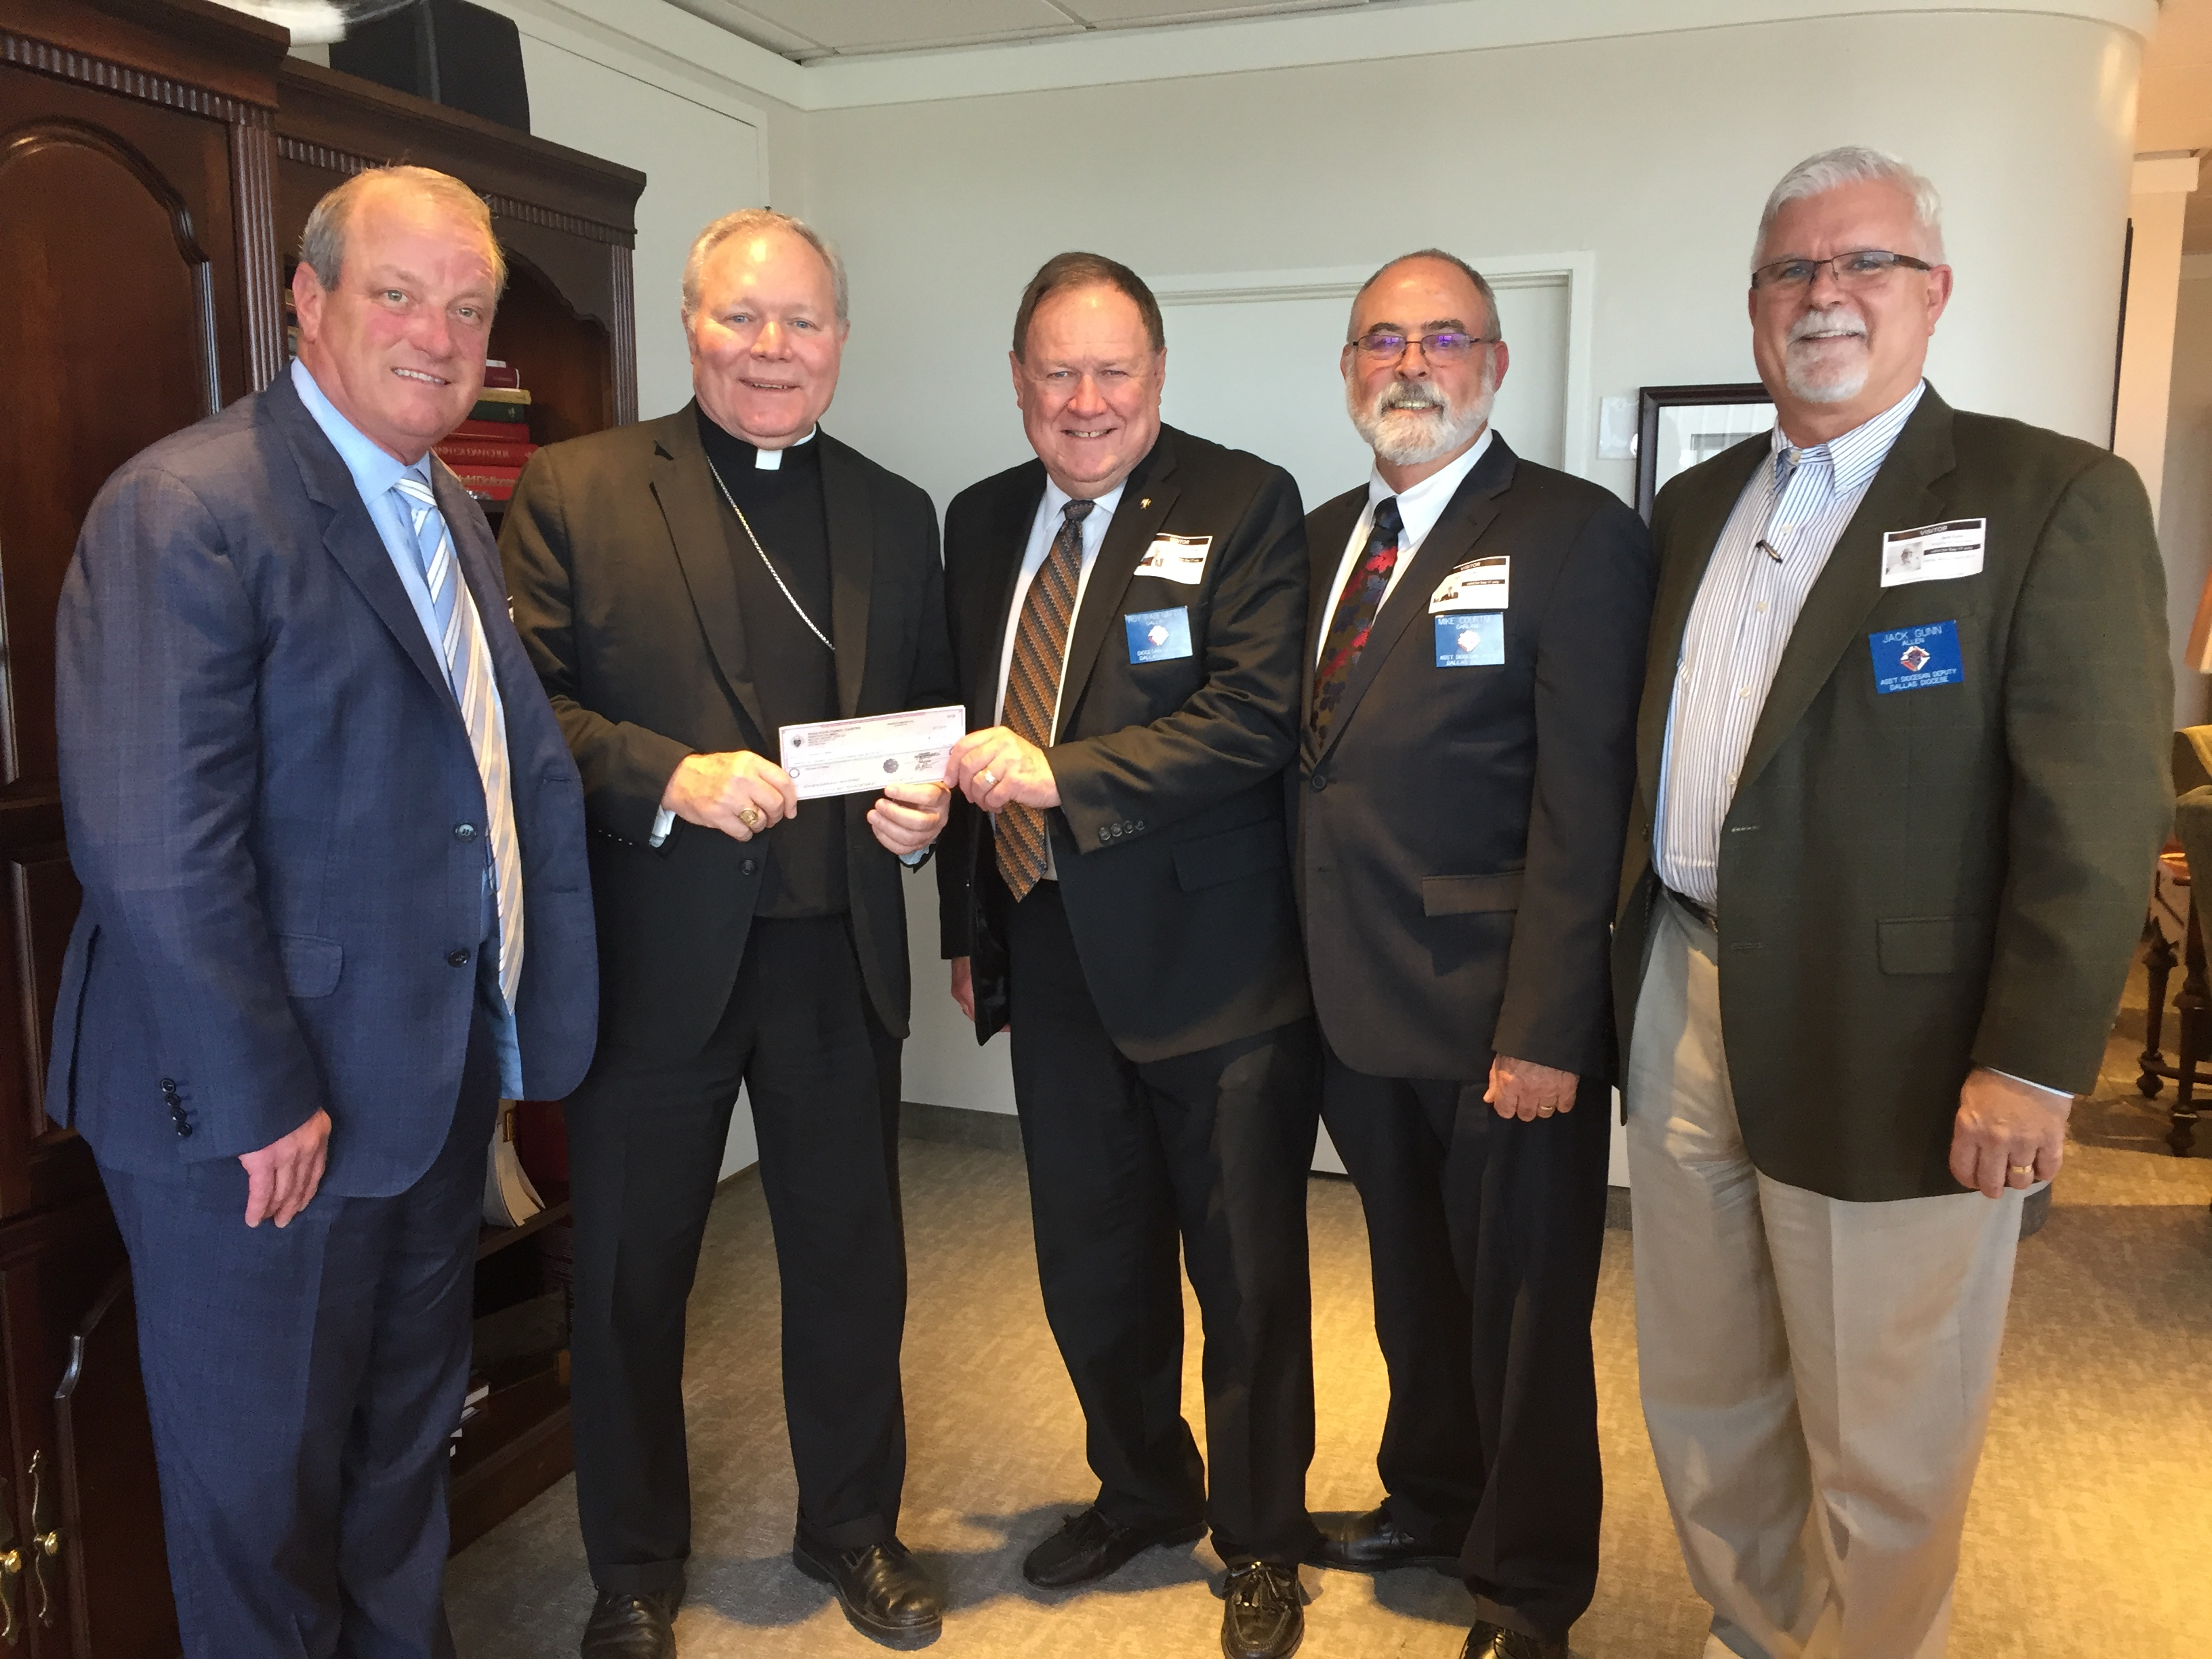 ddc-leadership-with-bishop-burns-2019-09